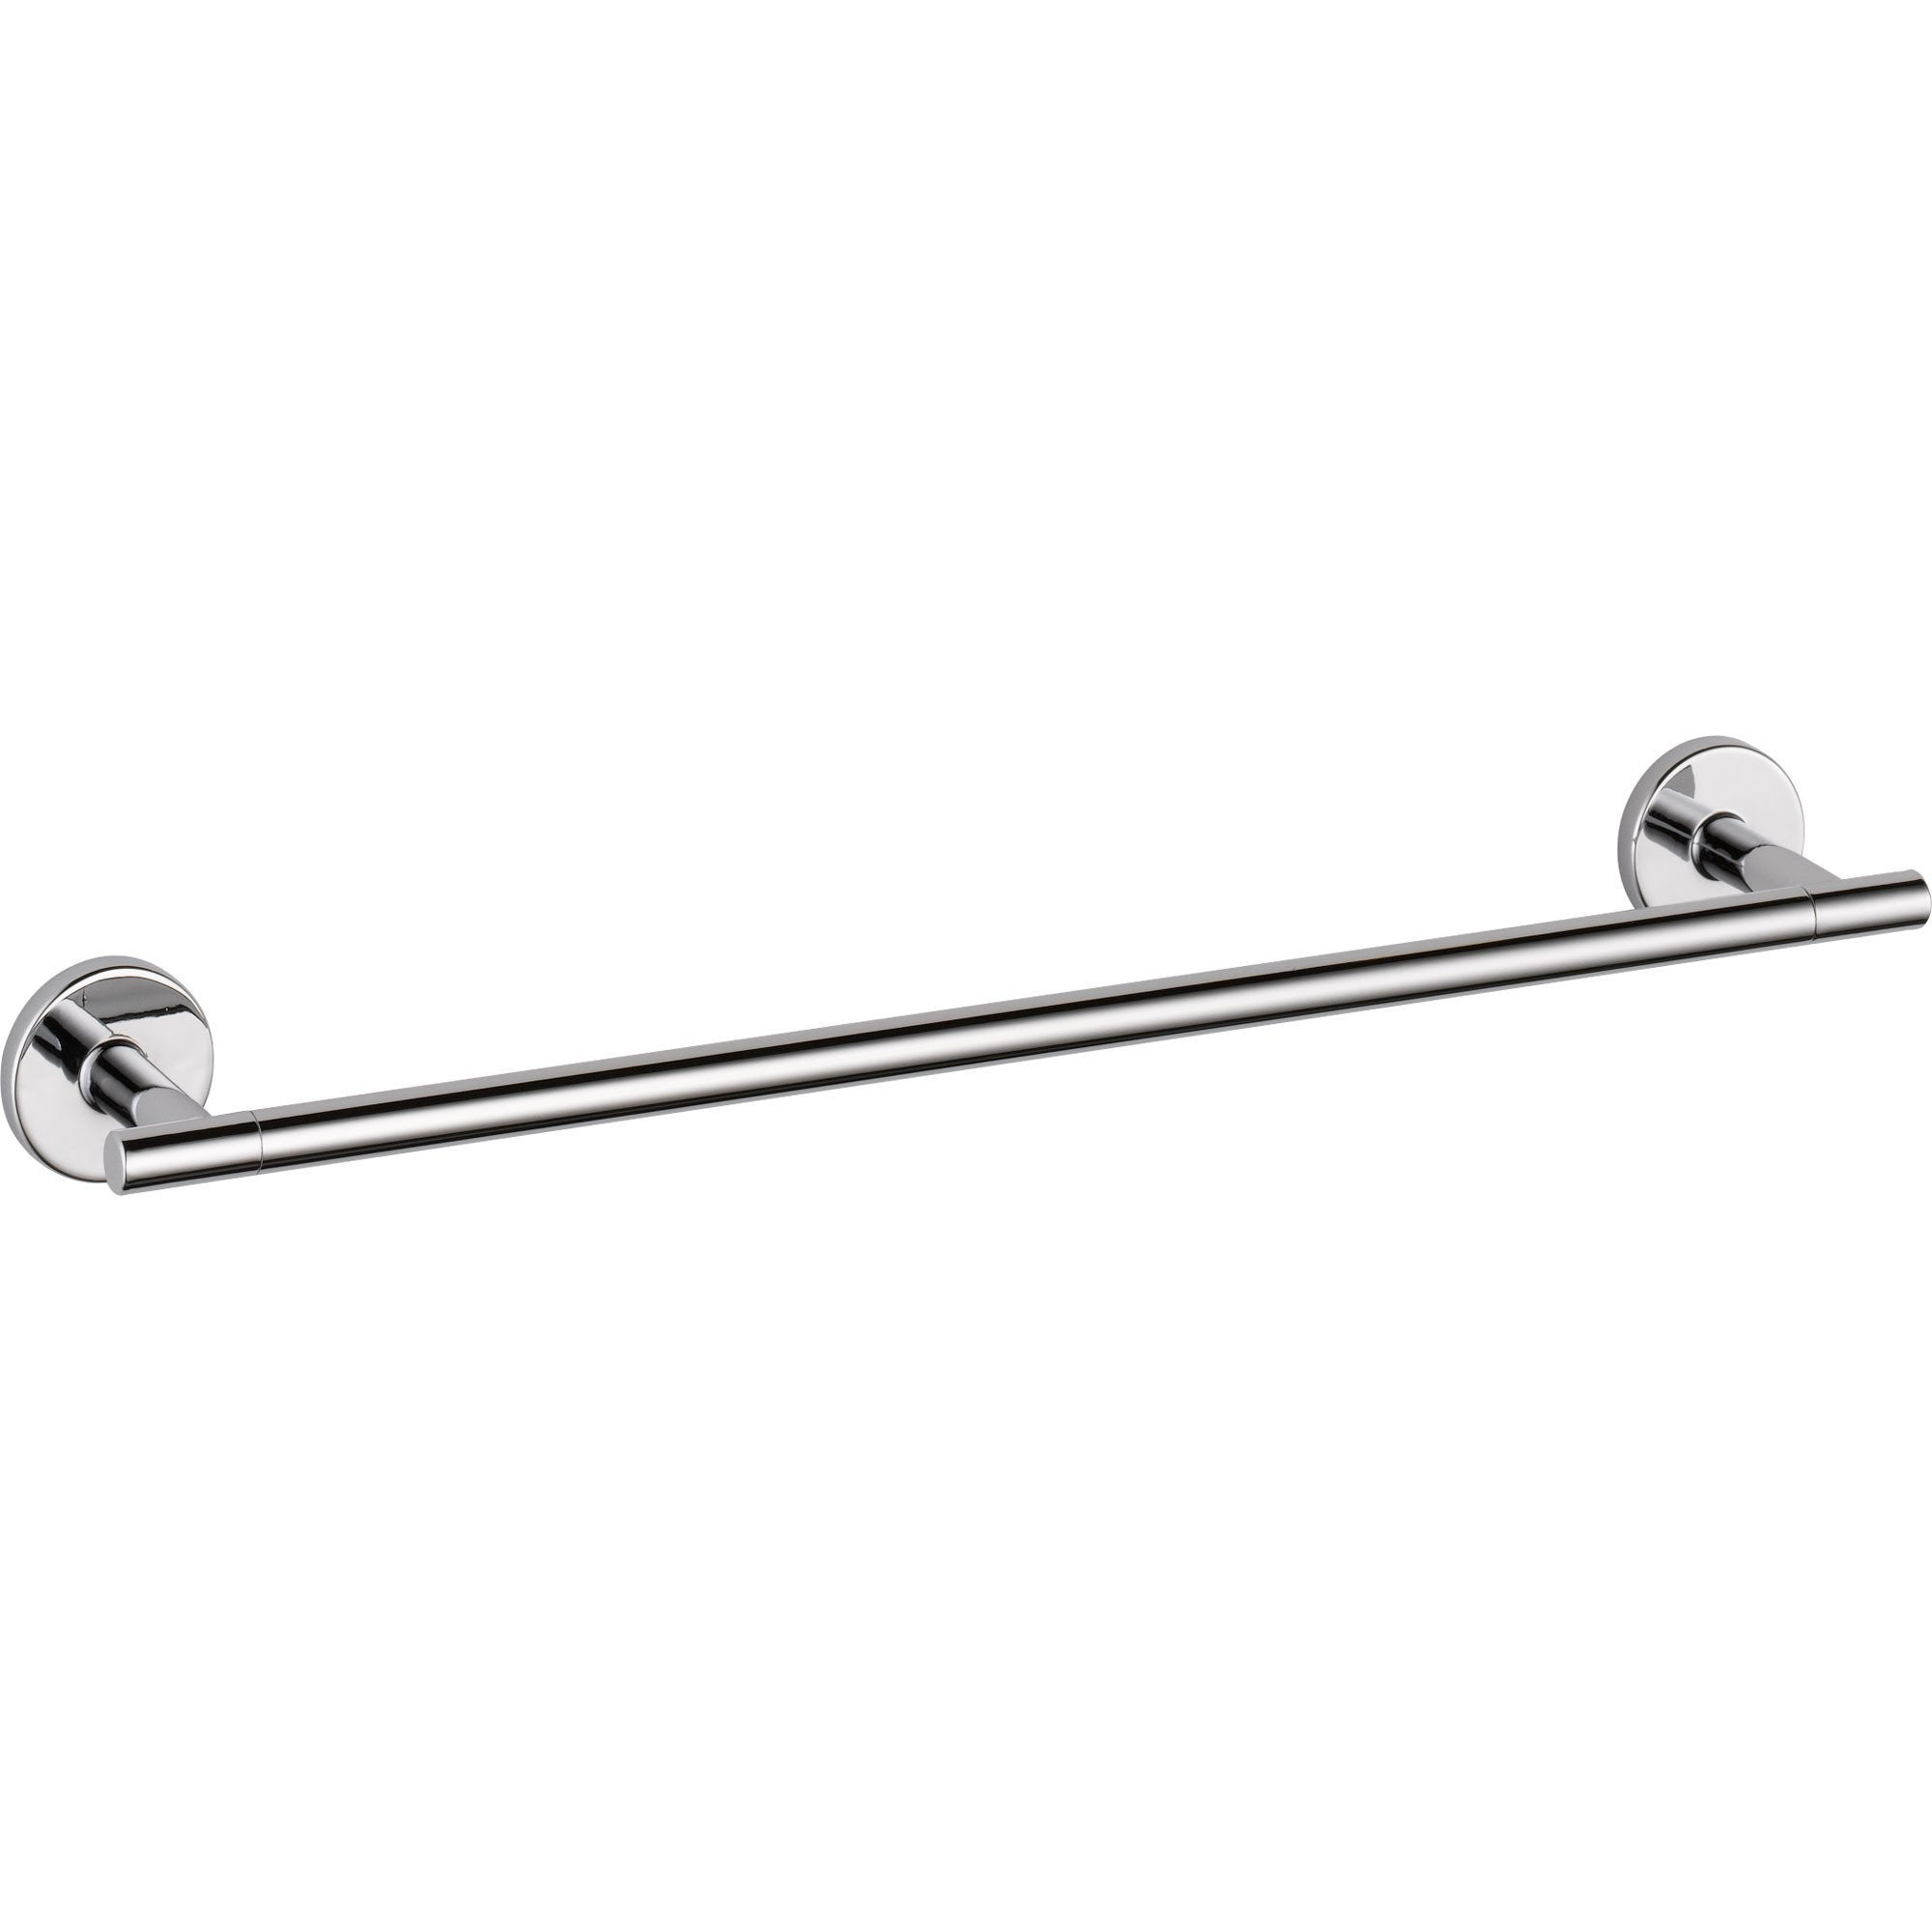 Delta Trinsic Modern Contemporary 18 inch Chrome Single Towel Bar 590173